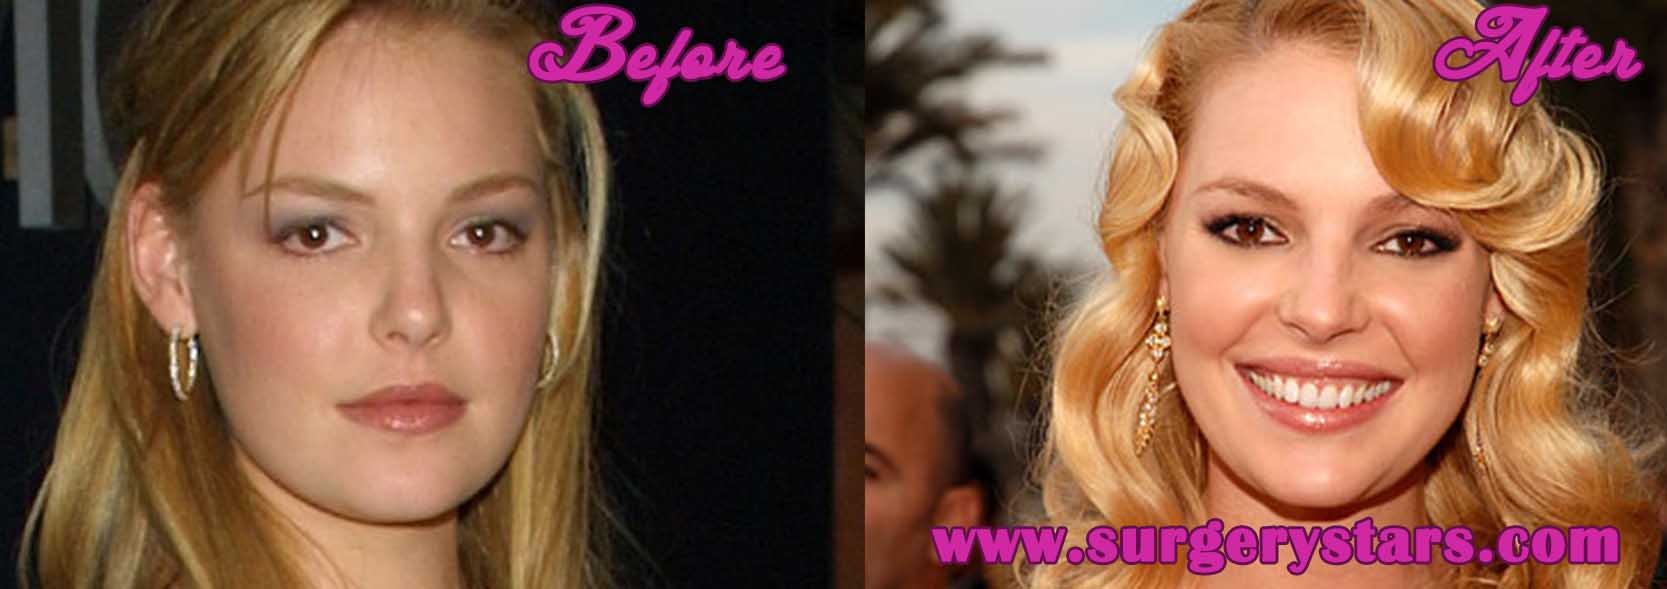 Heigl Plastic Surgery Before After 1